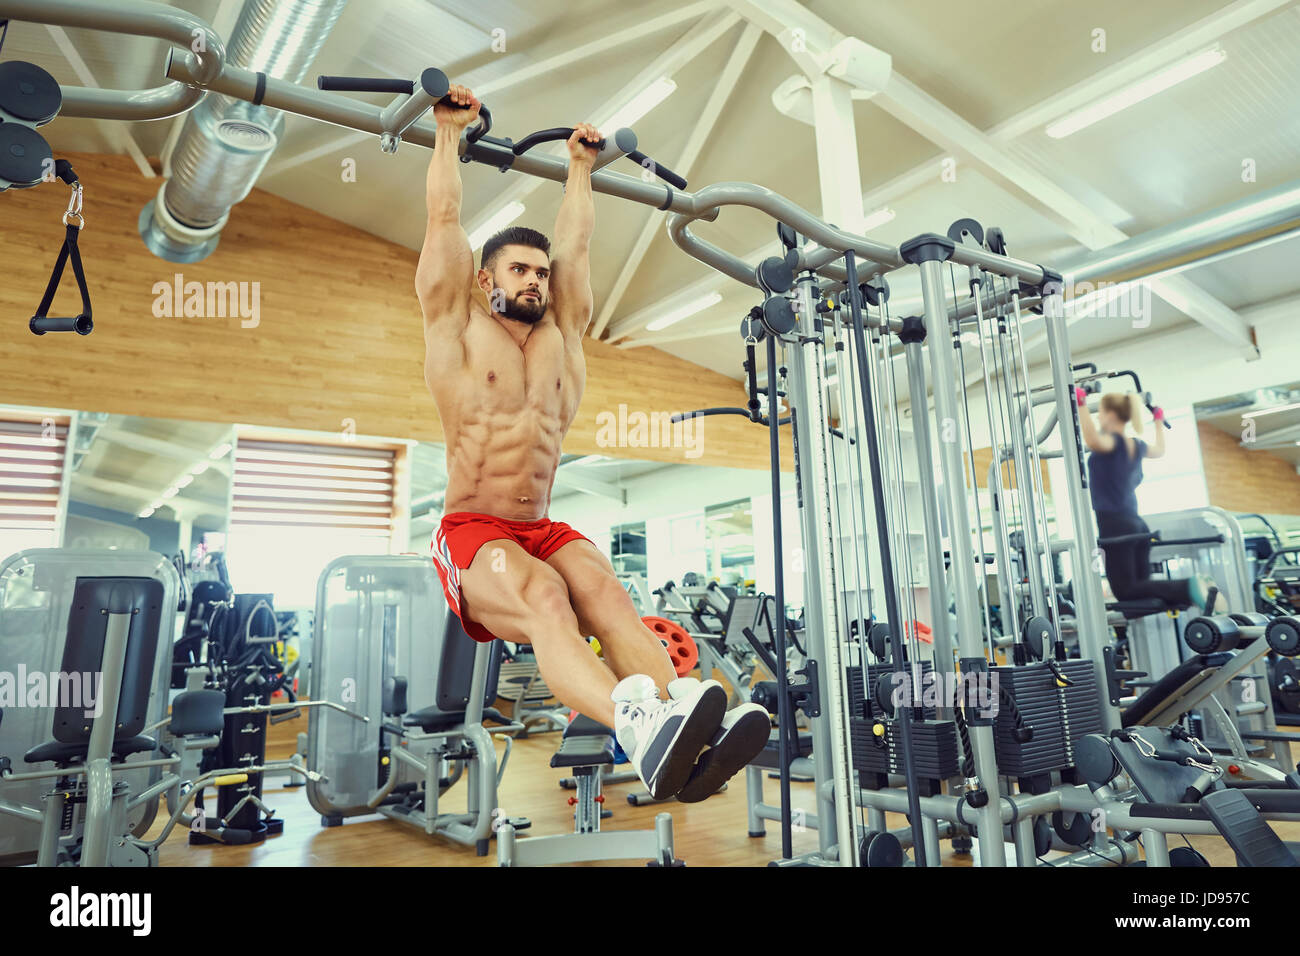 A man doing abs workouts on pull up bar in gym - Stock Image